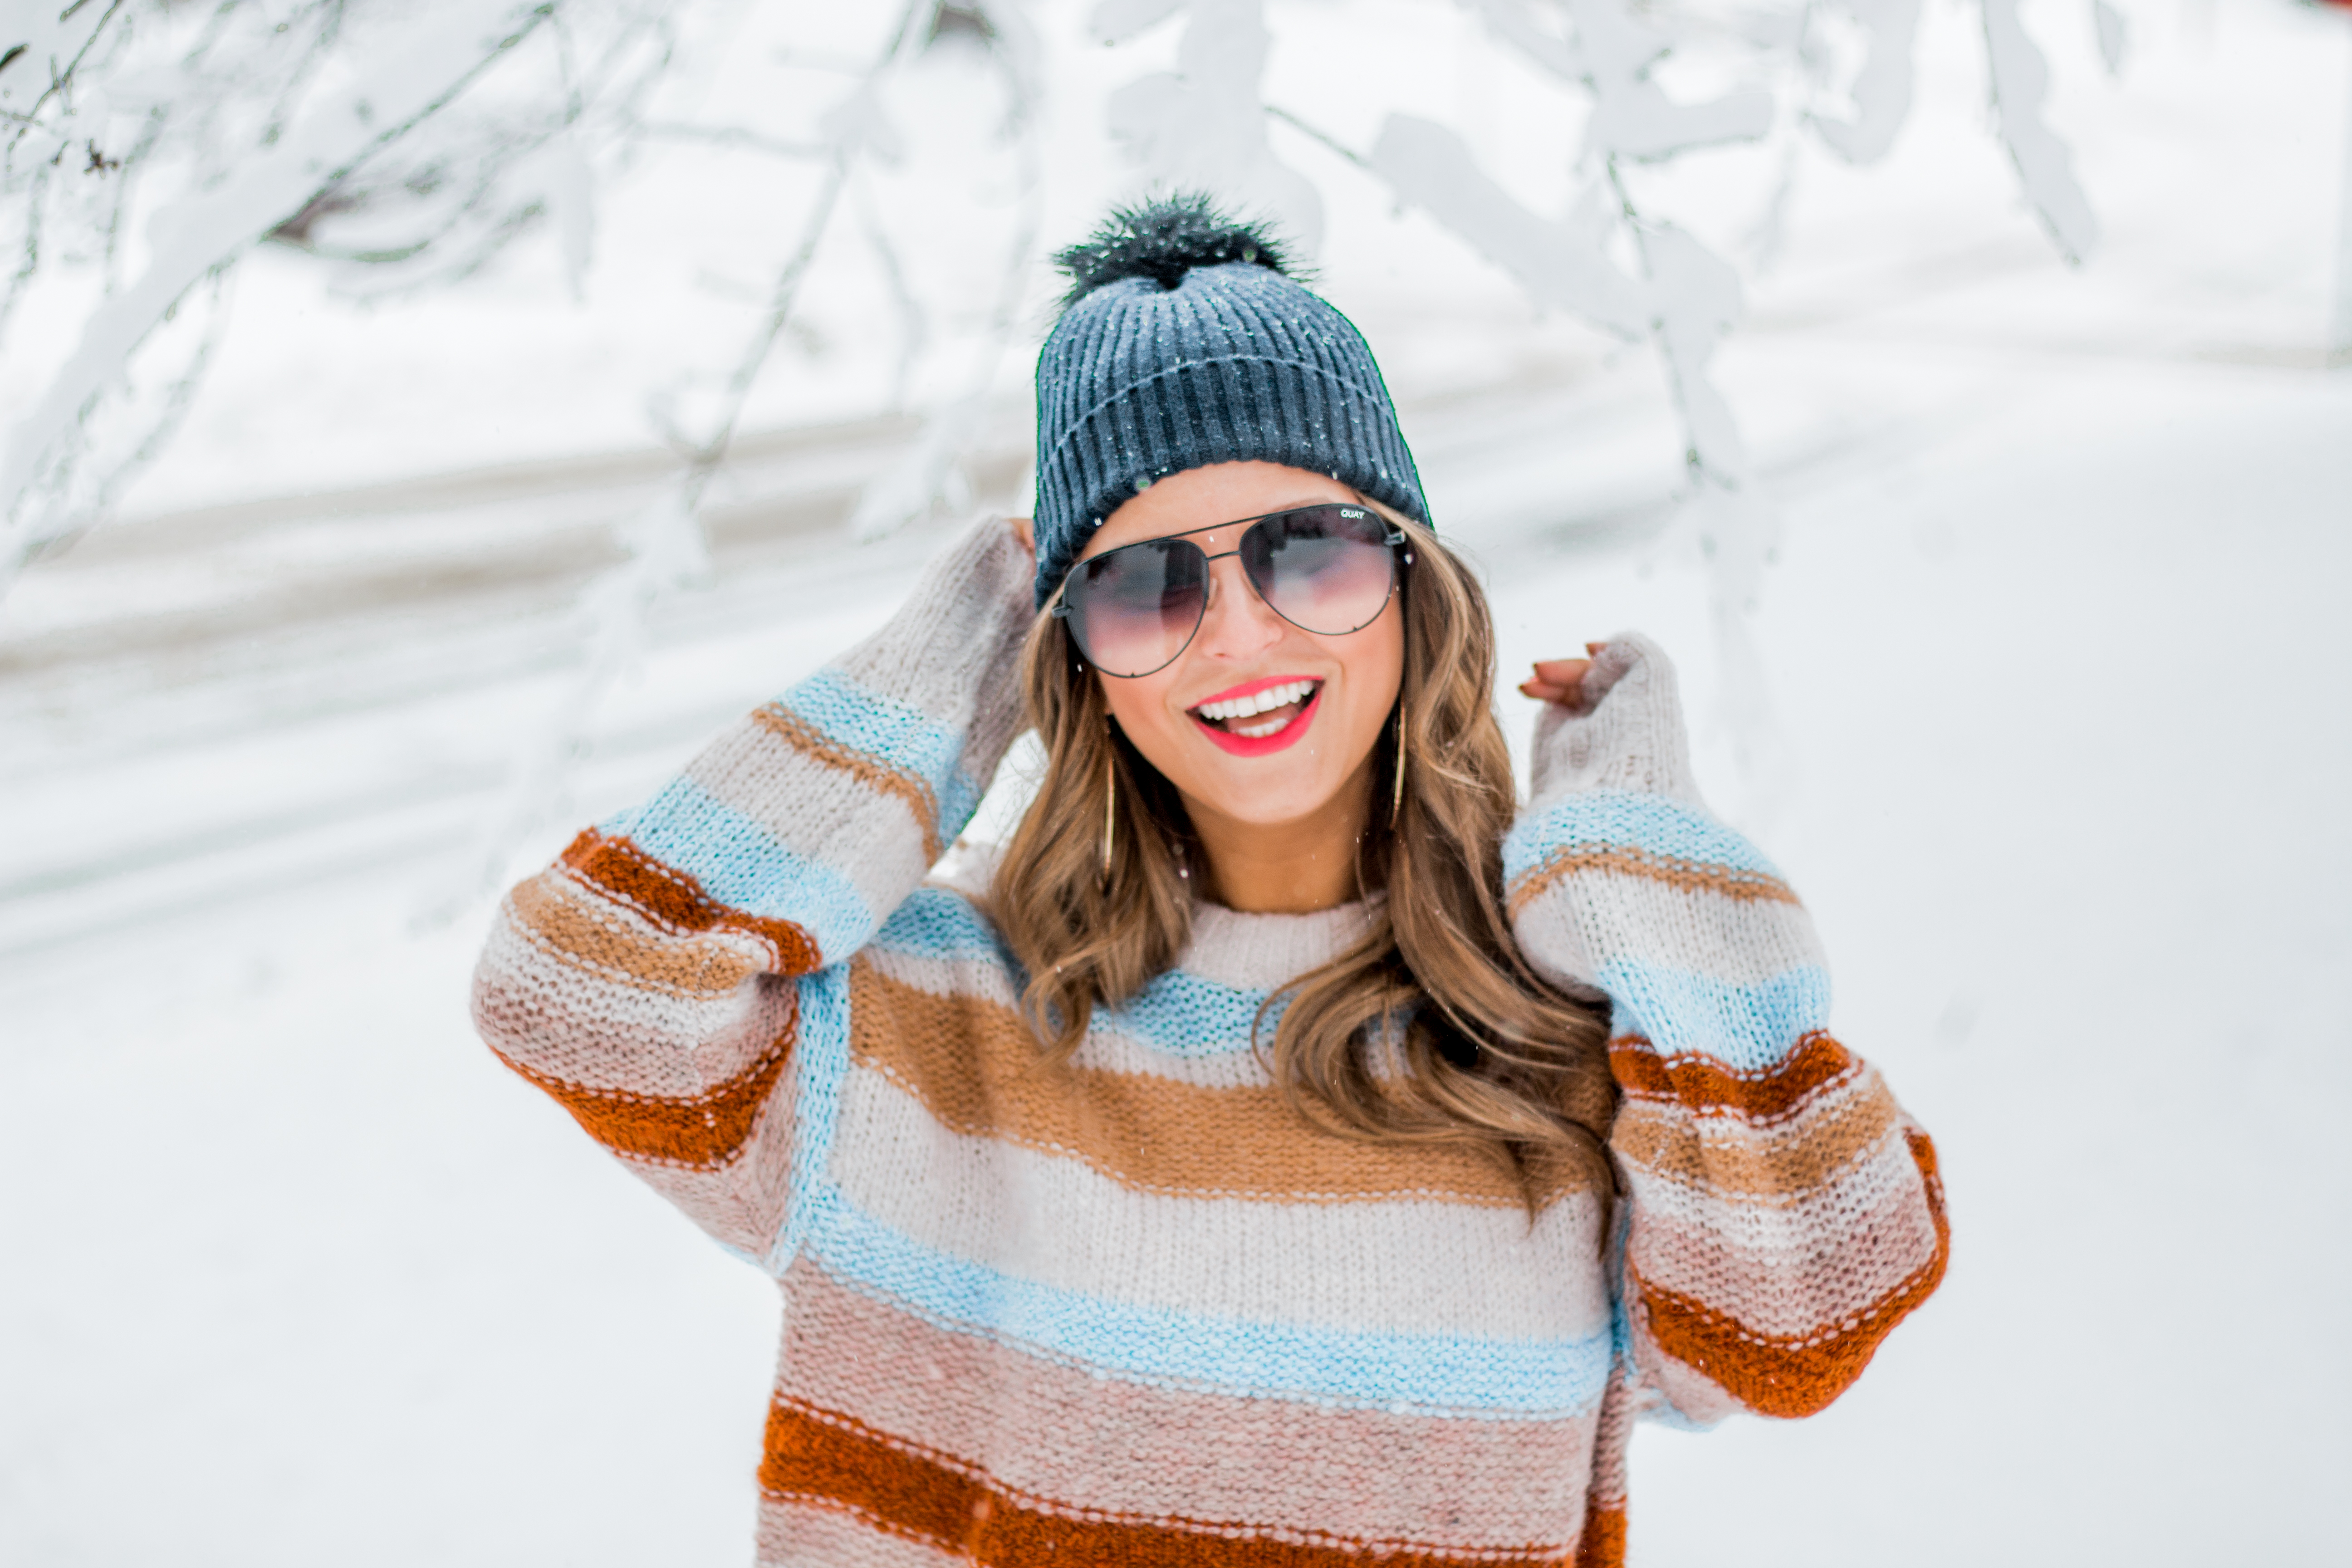 Women's Fashion - American Eagle Sweater - Hunter Boots - Beanie - Snow Day - OOTD - Fashion Blogger - Winter Fashion - 11